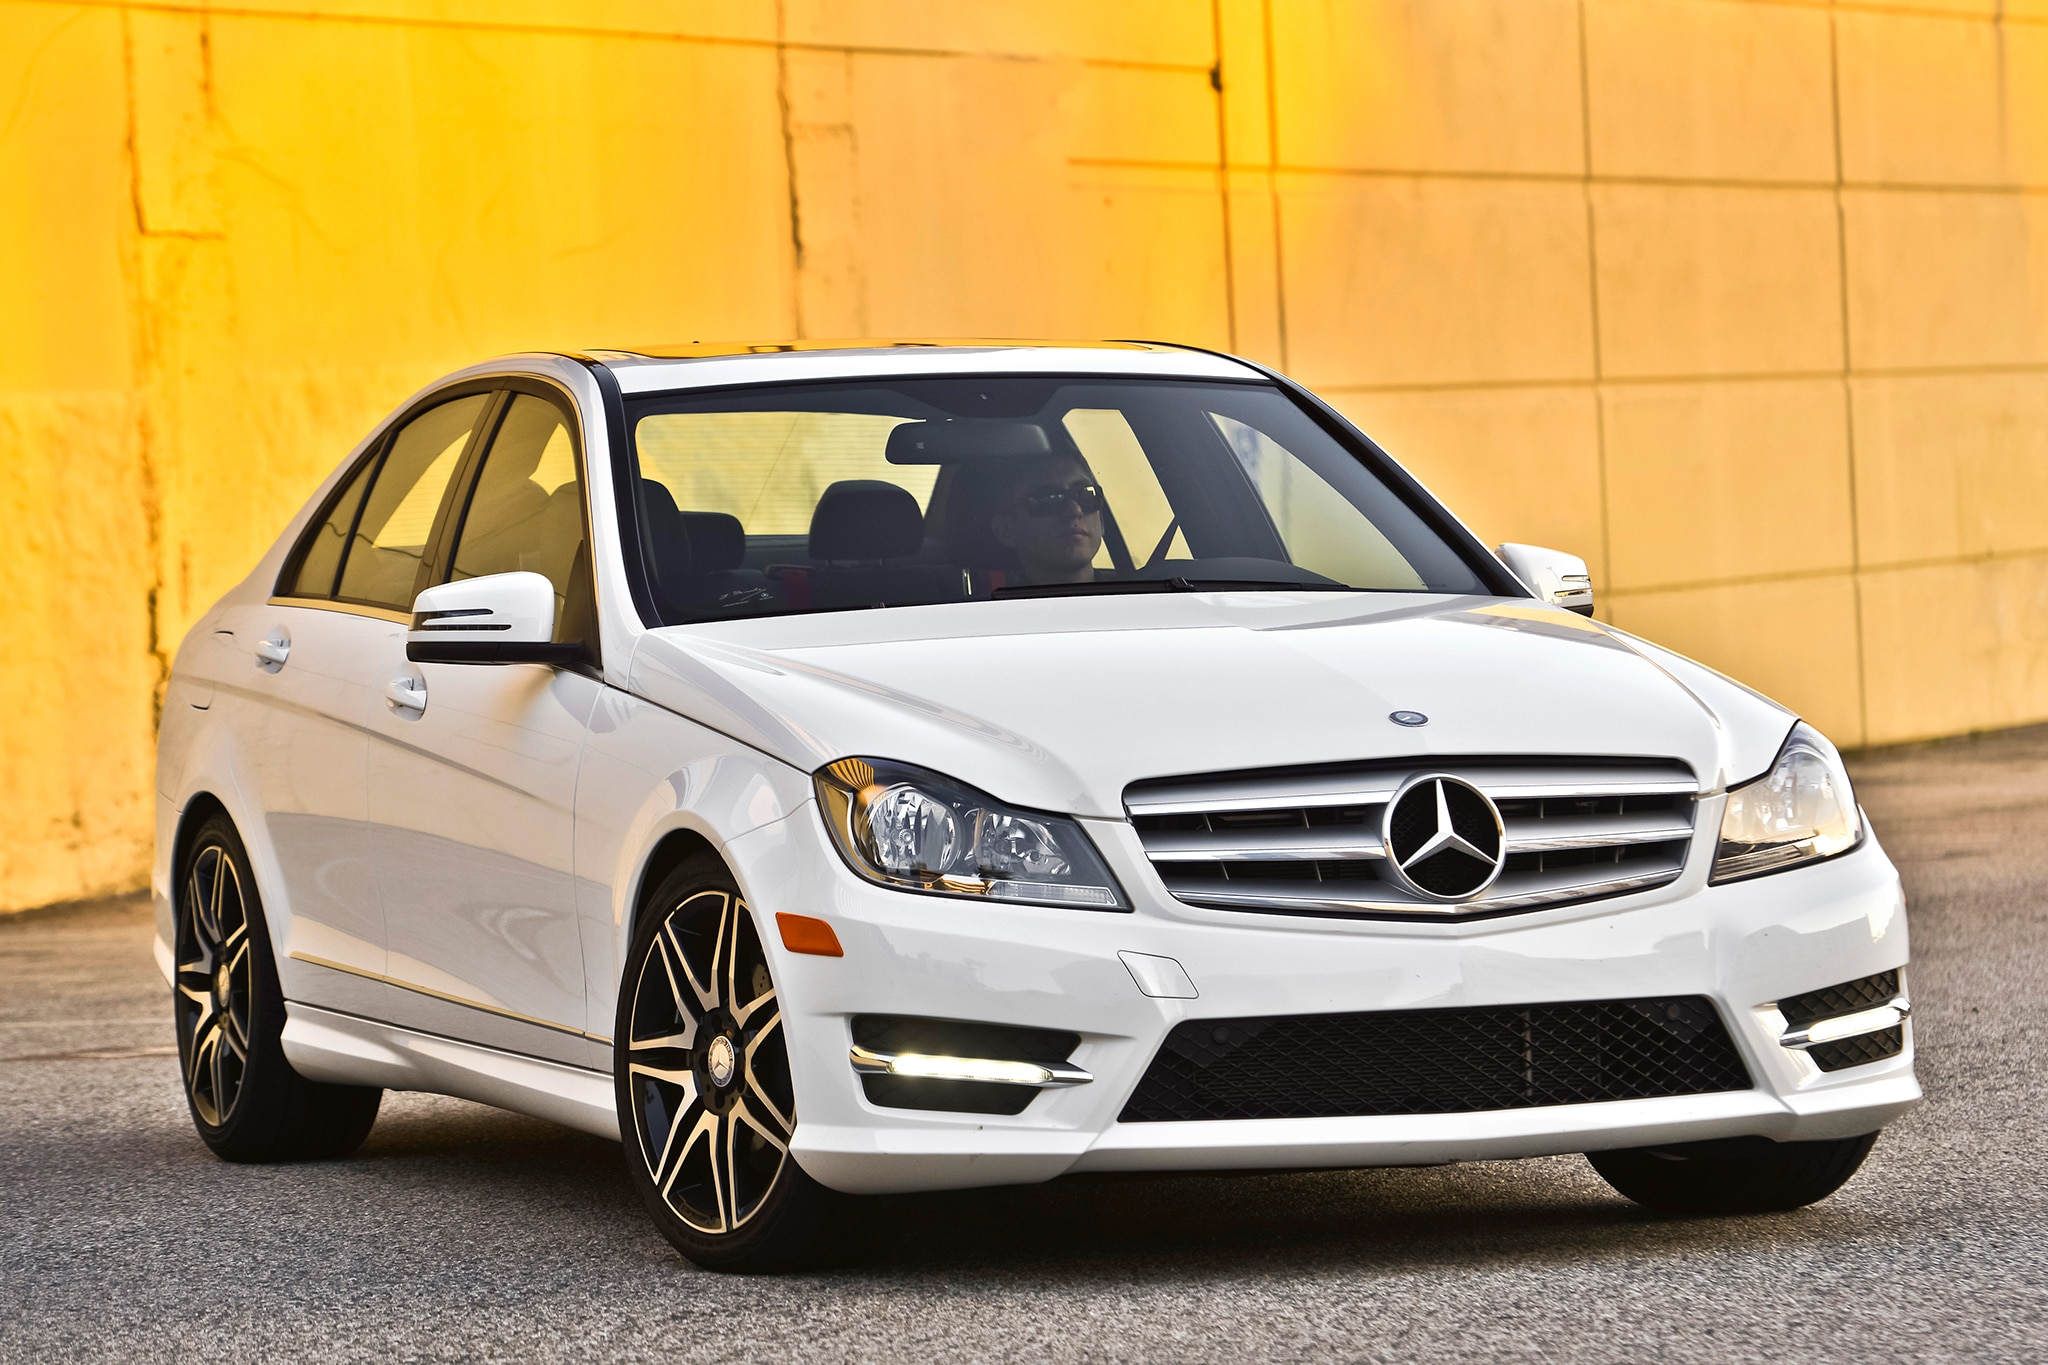 2013 mercedes benz c300 4matic gains power economy m